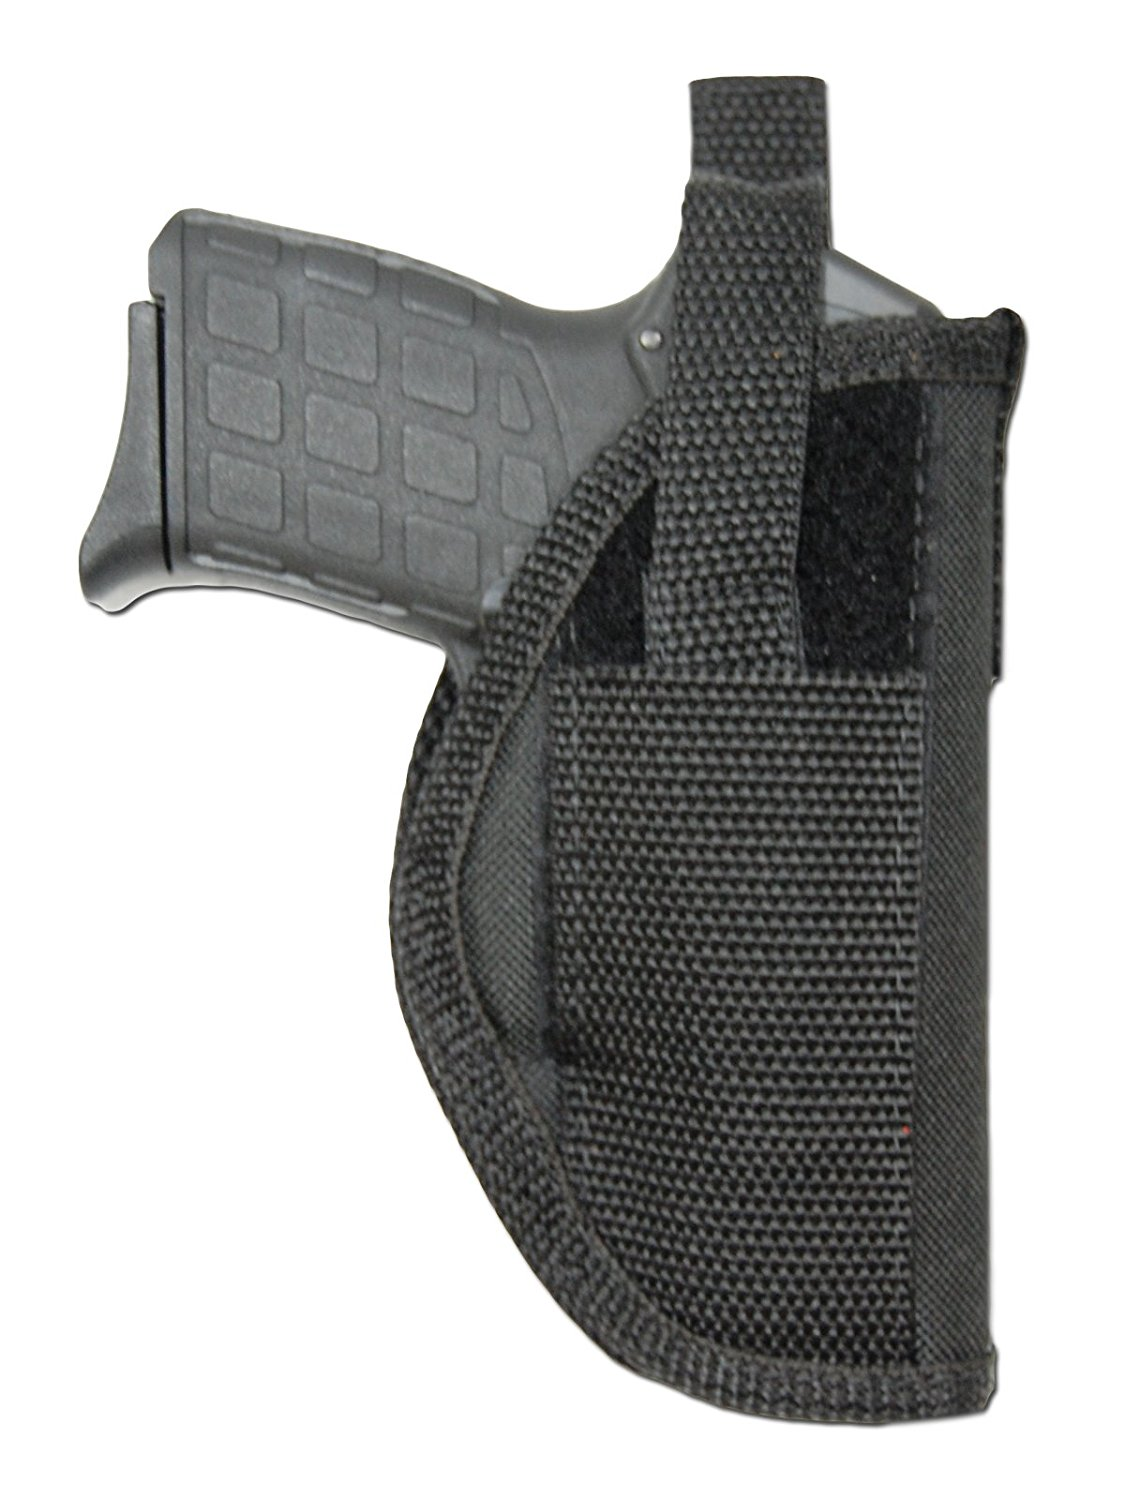 Concealment Cross Draw Gun Holster by Barsony Holsters